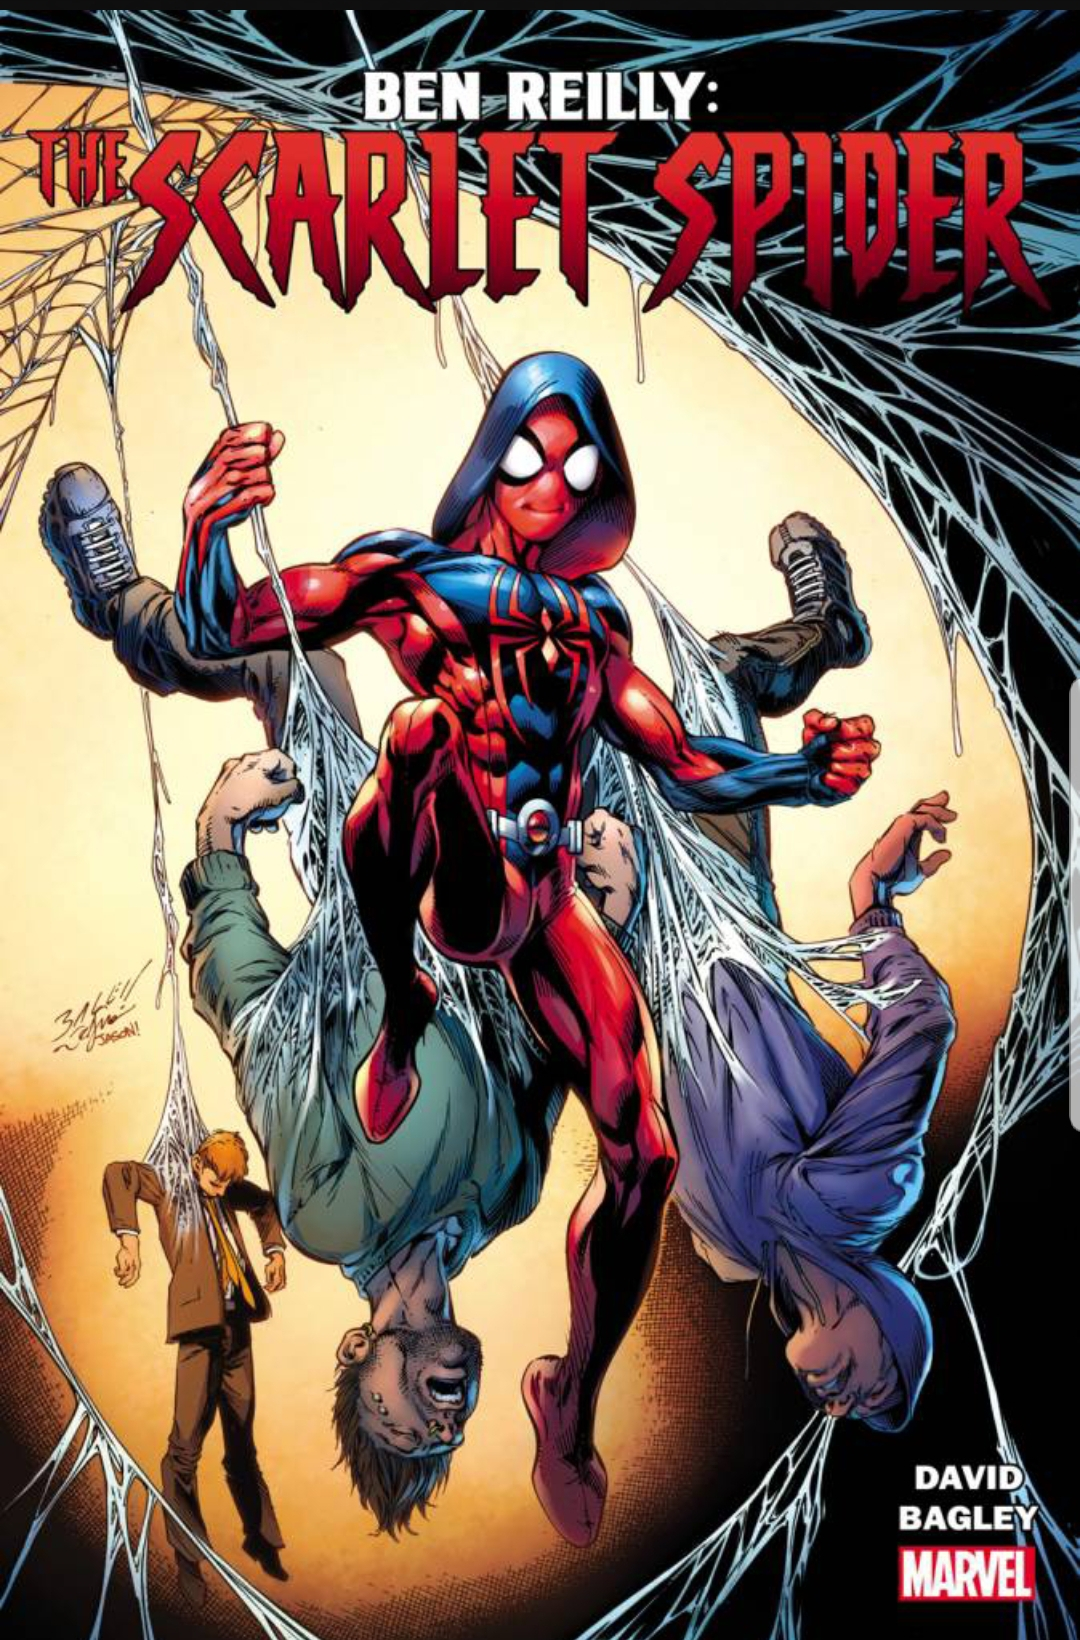 The Miseducation of Ben Reilly Part 3